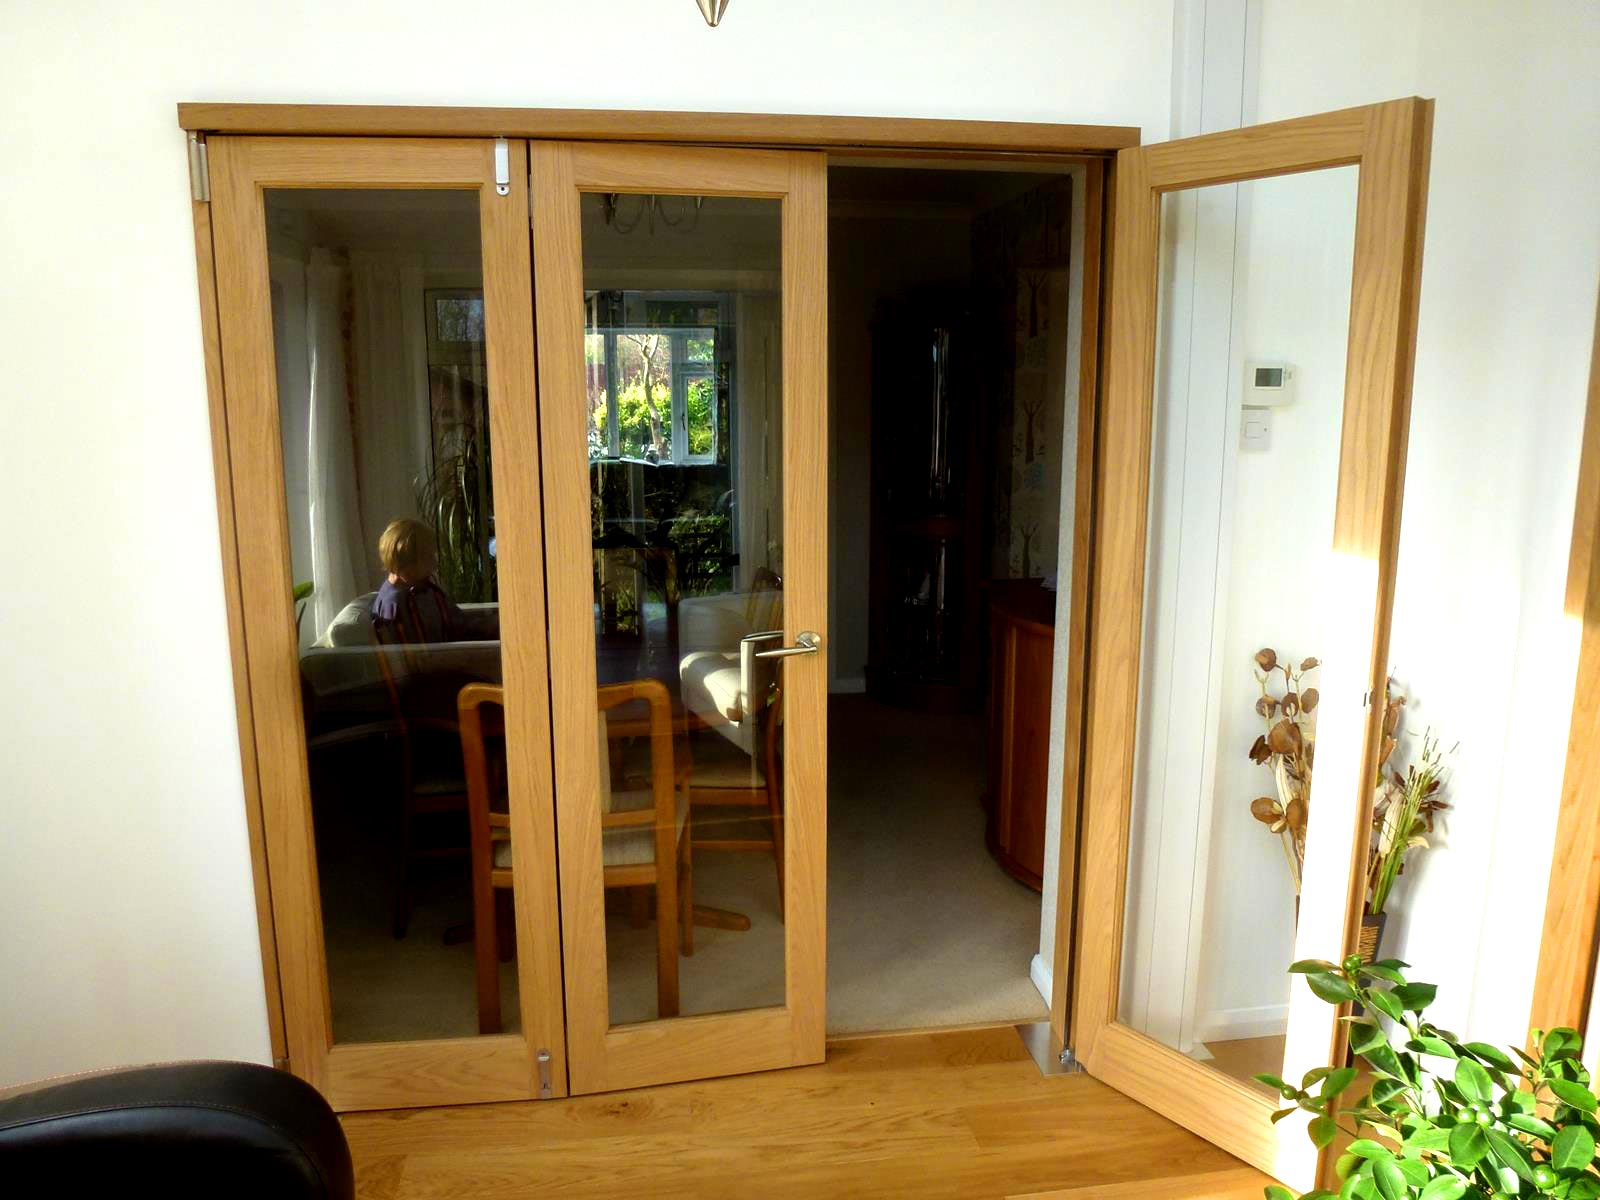 Vufold - Doors to separate kitchen from living room ...